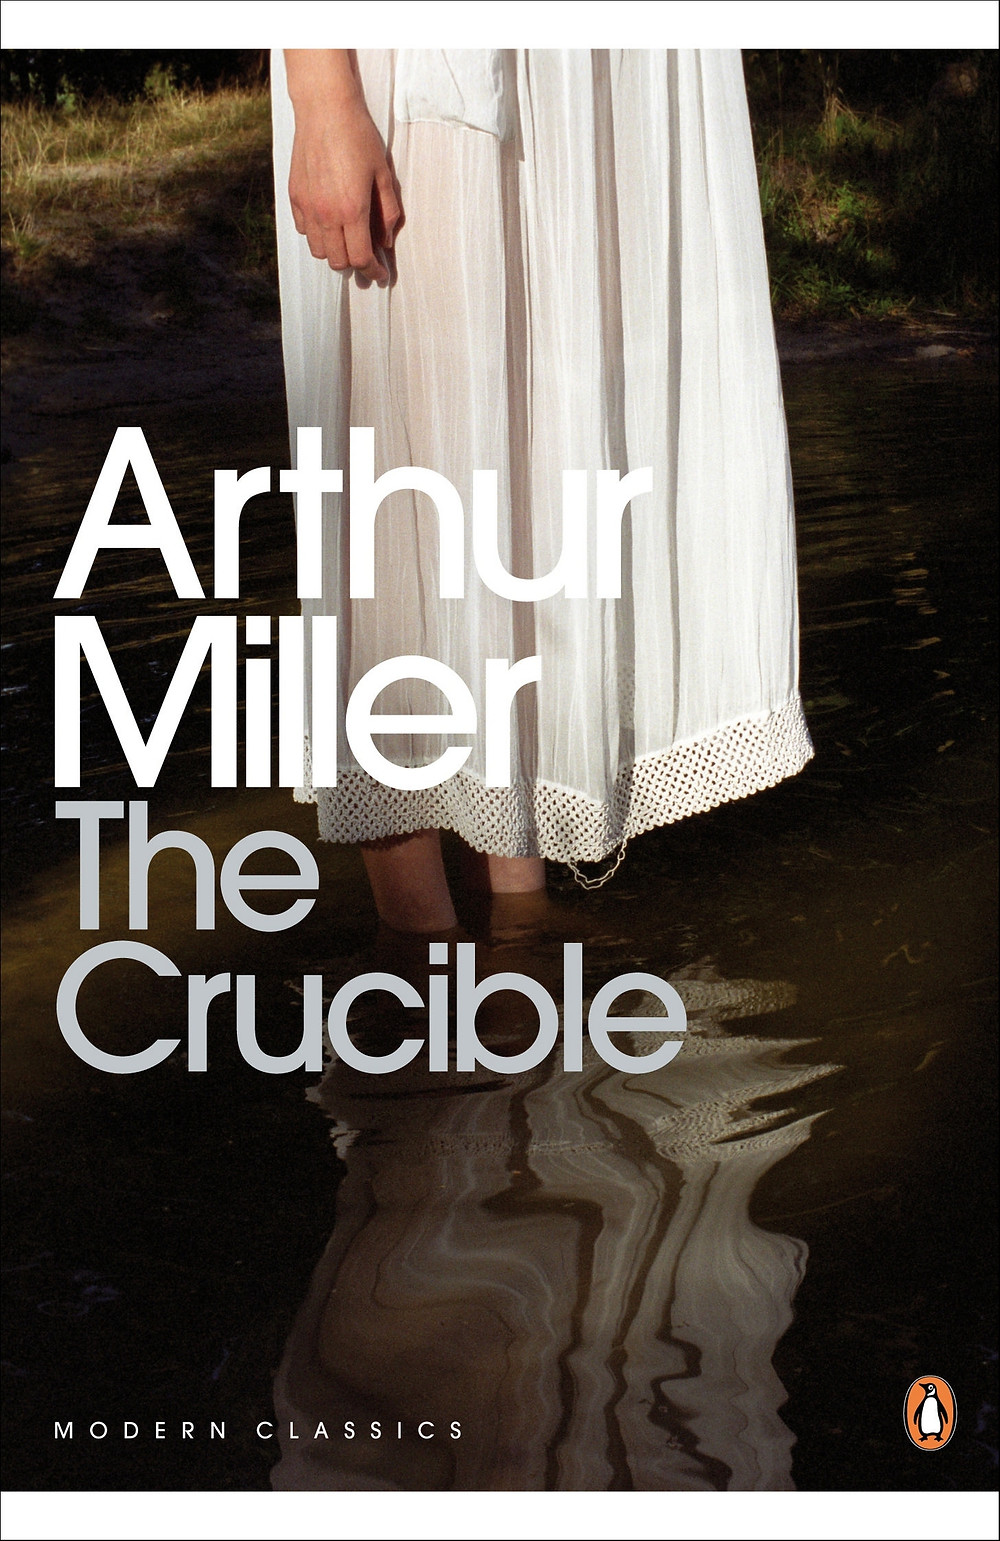 The Crucible by Arthur Miller.jpg